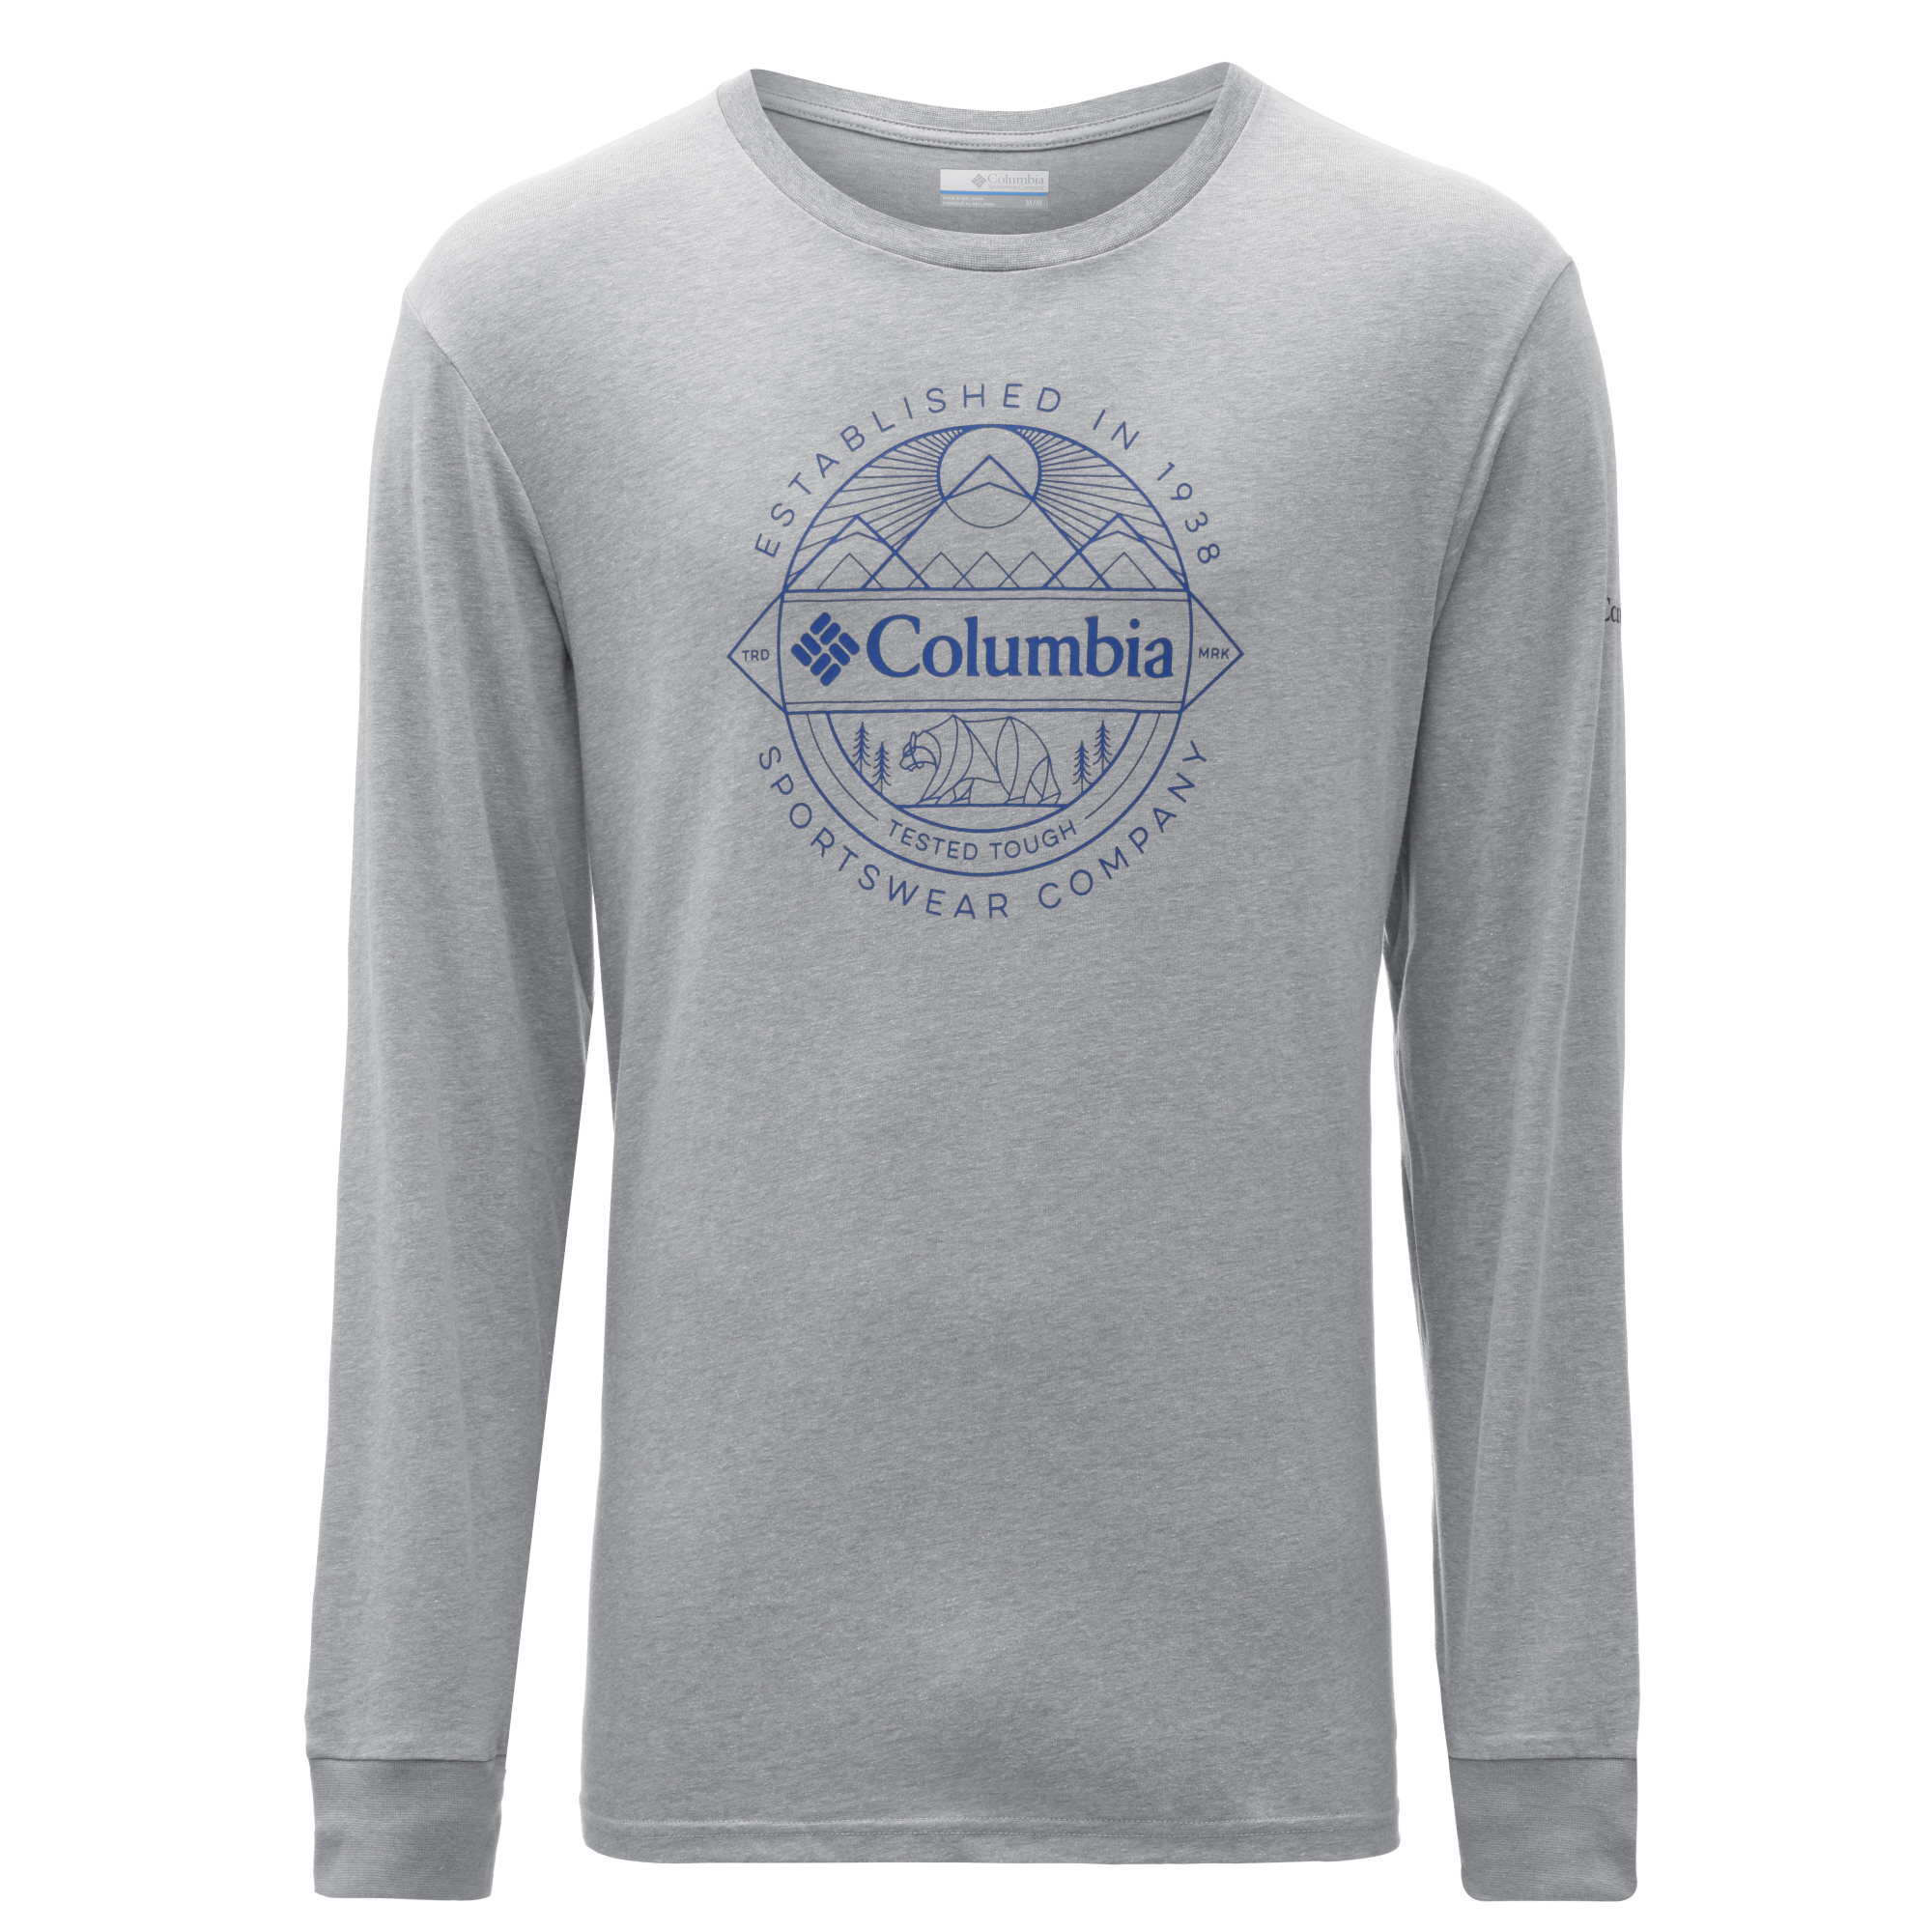 Columbia Cades Cove™ Long Sleeve Graphic Tee | Trøjer